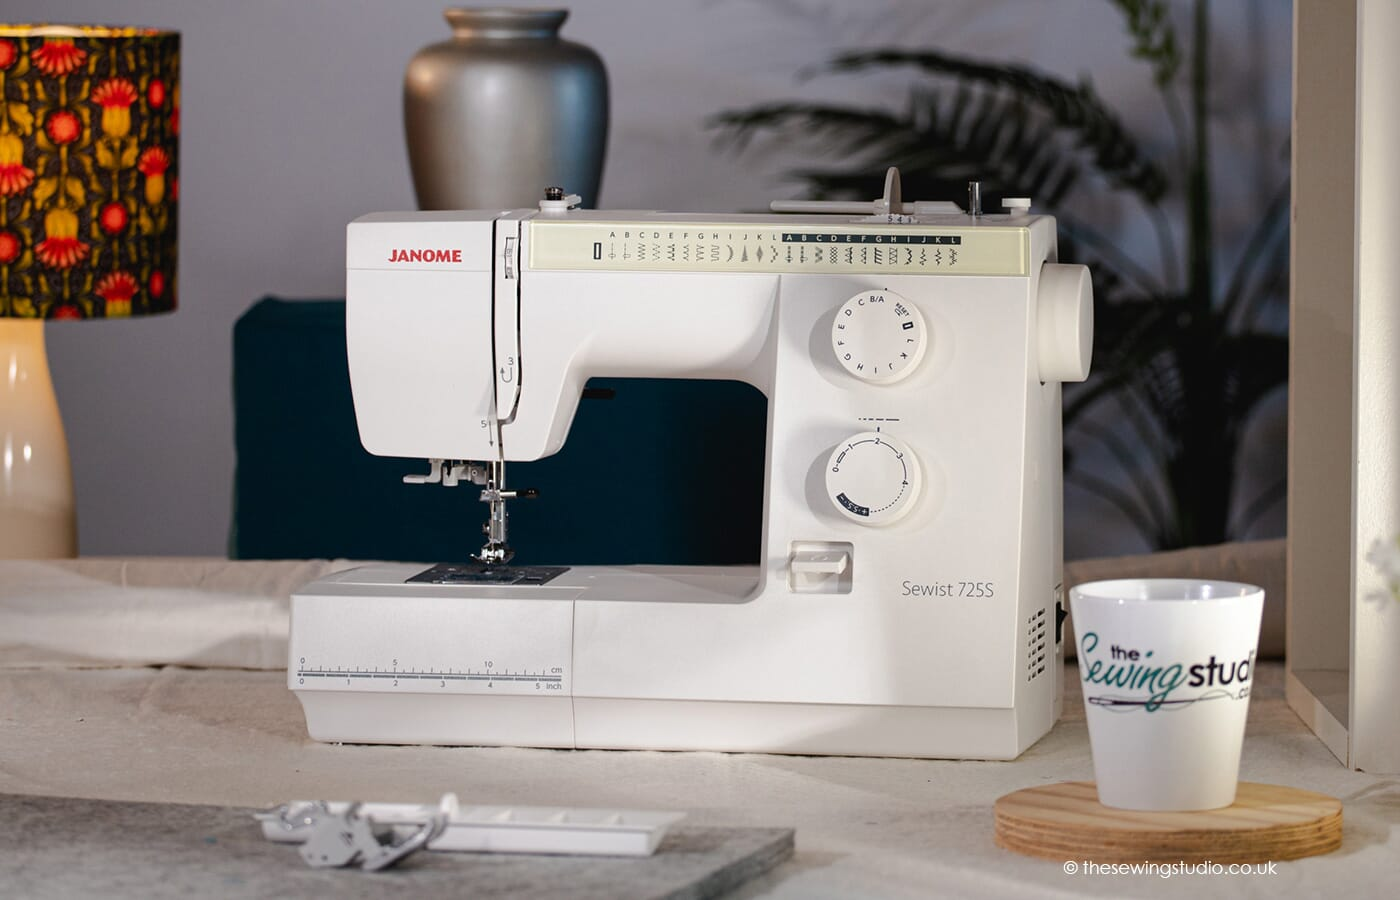 Janome 725s Sewing Machine in a Sewing Room